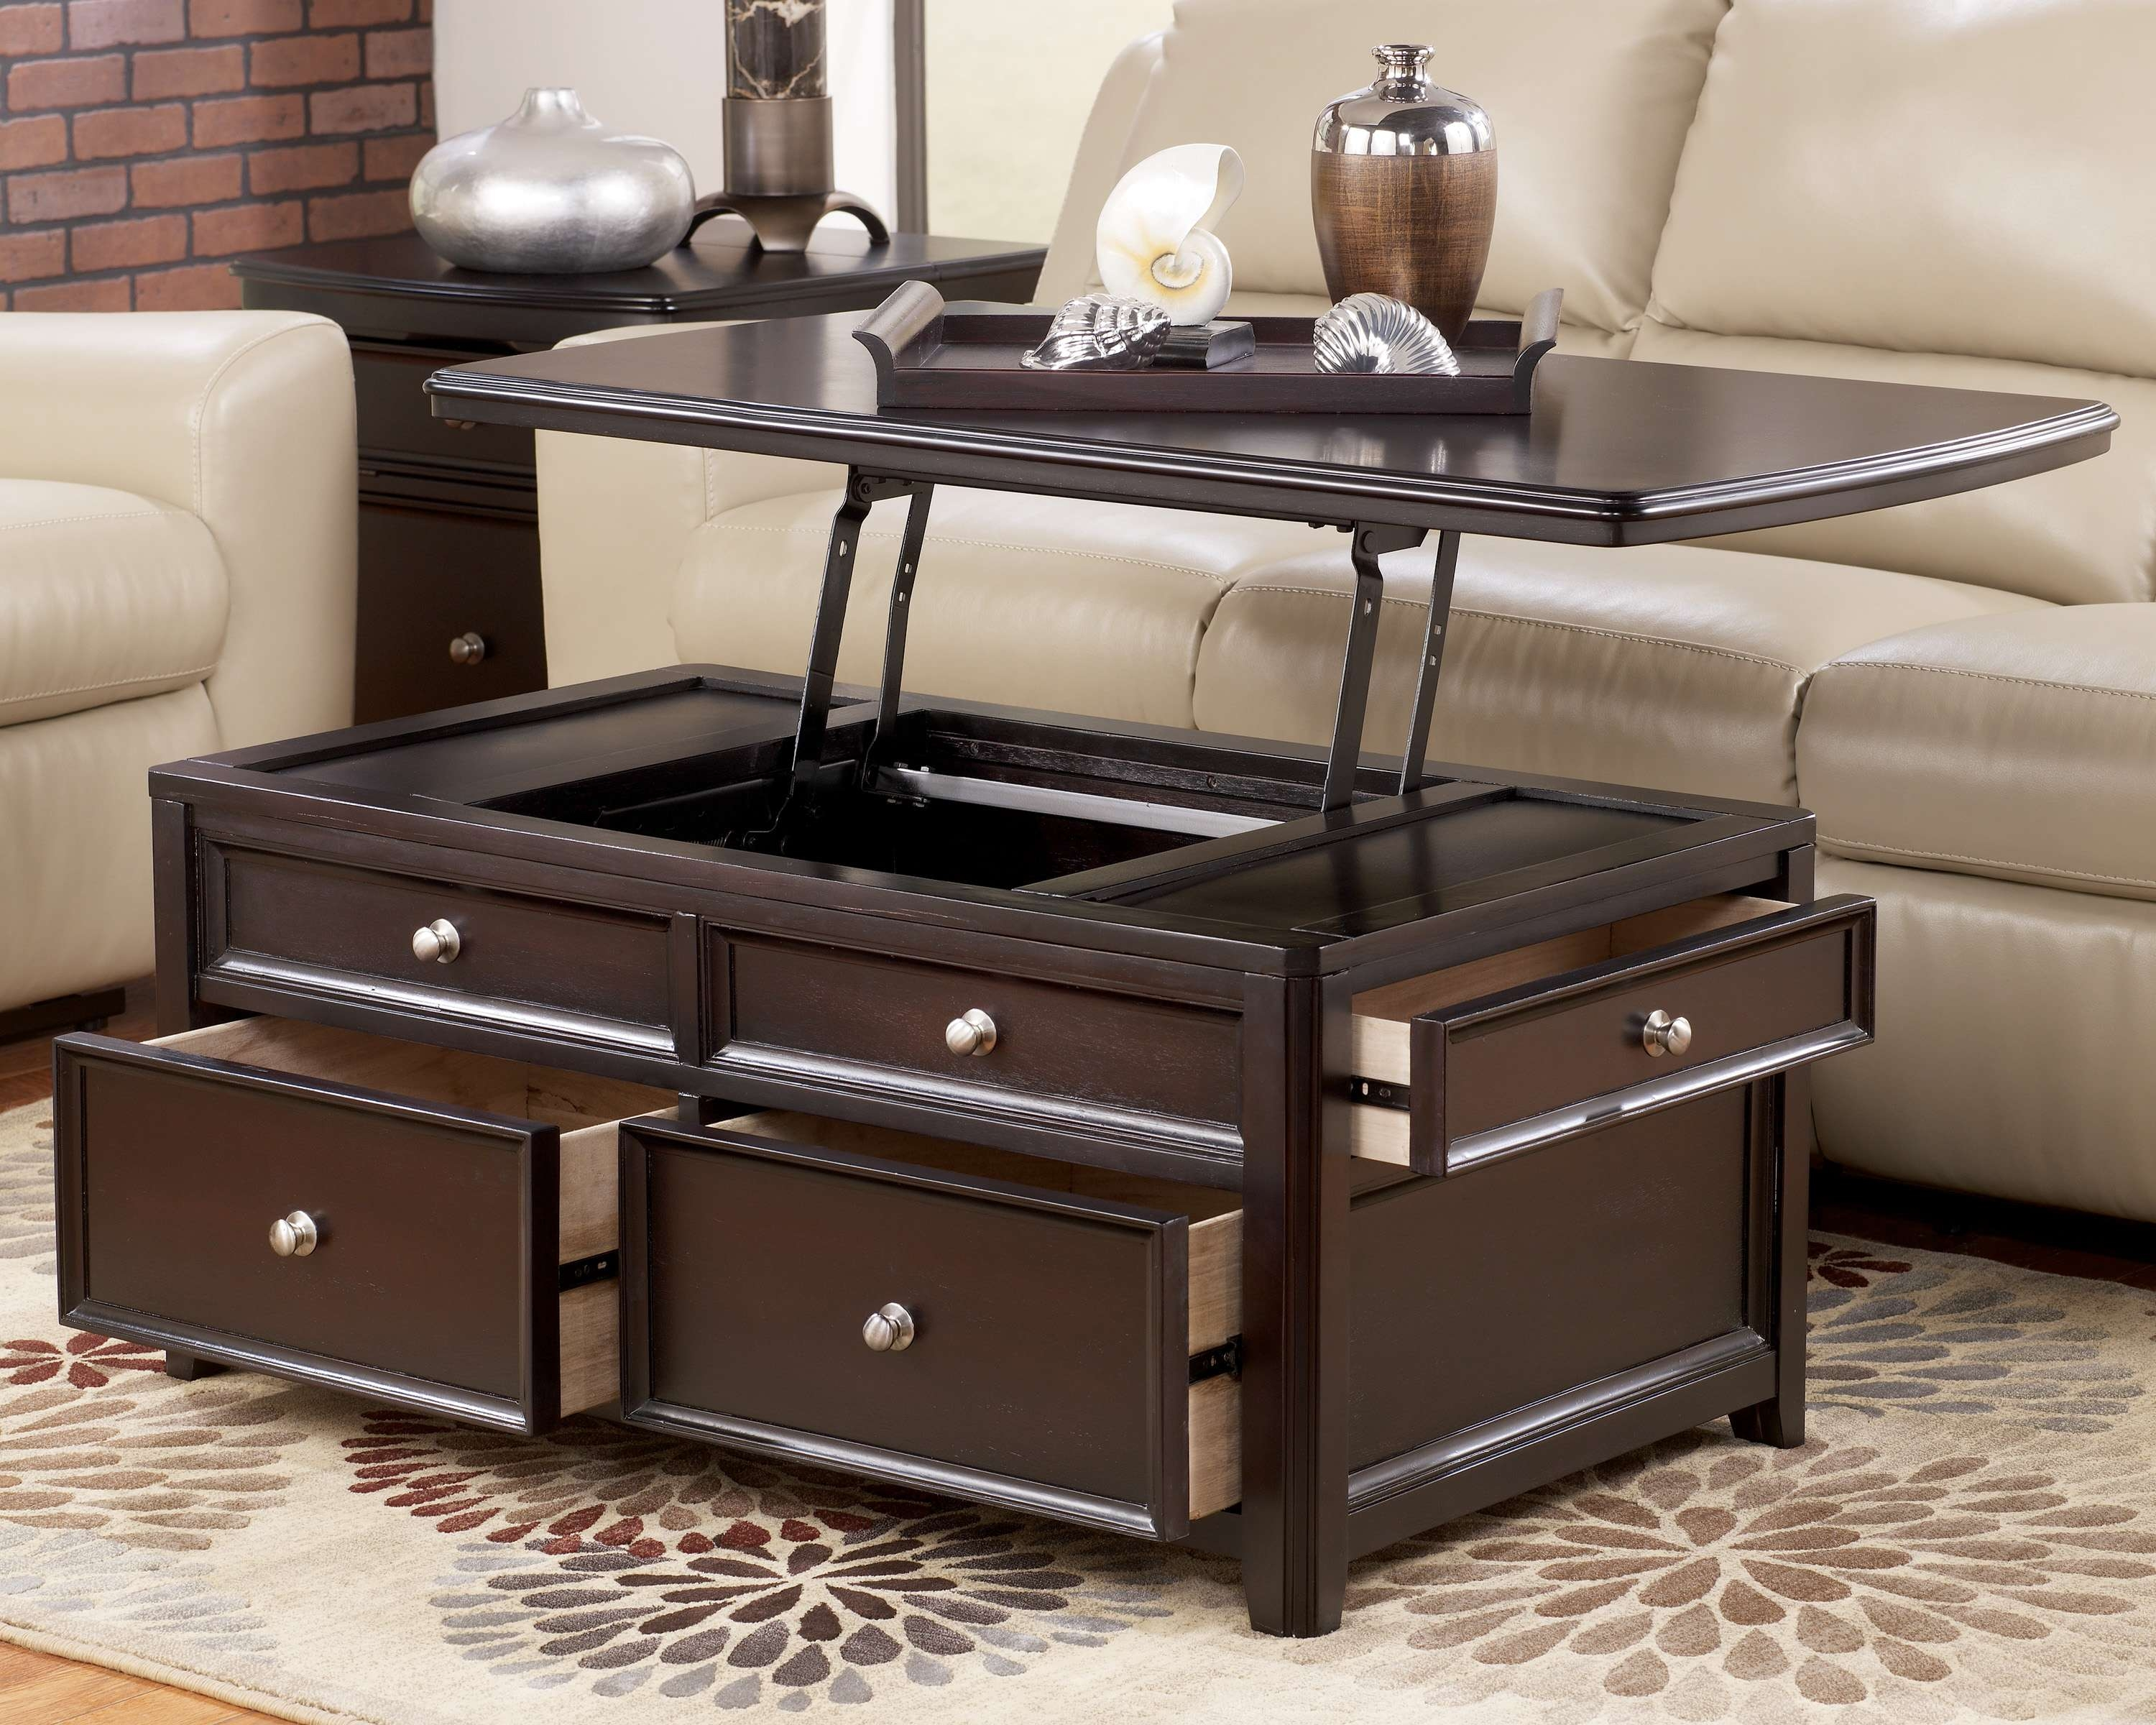 Well Liked Coffee Table With Raised Top Inside Coffee Table With Lift Top Ikea – Unac (View 19 of 20)